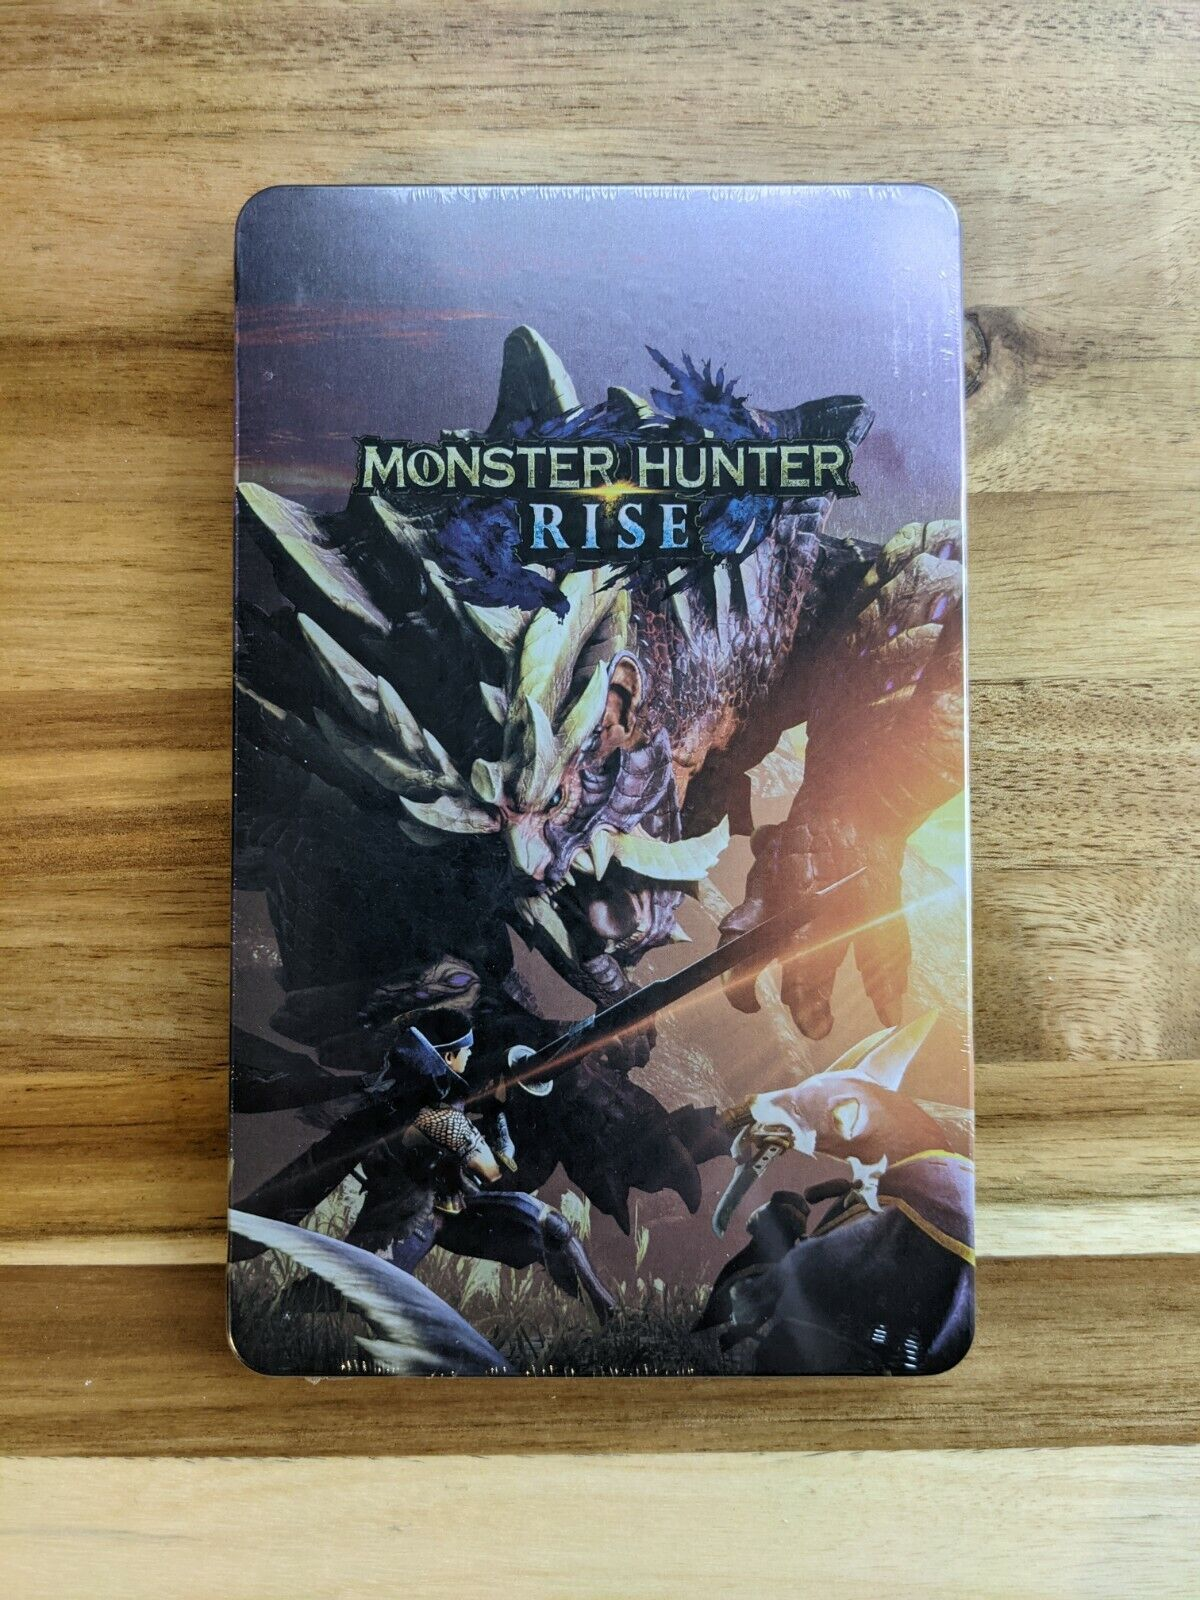 Monster Hunter Rise Steelbook New/Sealed Adult Owned And Ships Fast No Game - $33.51